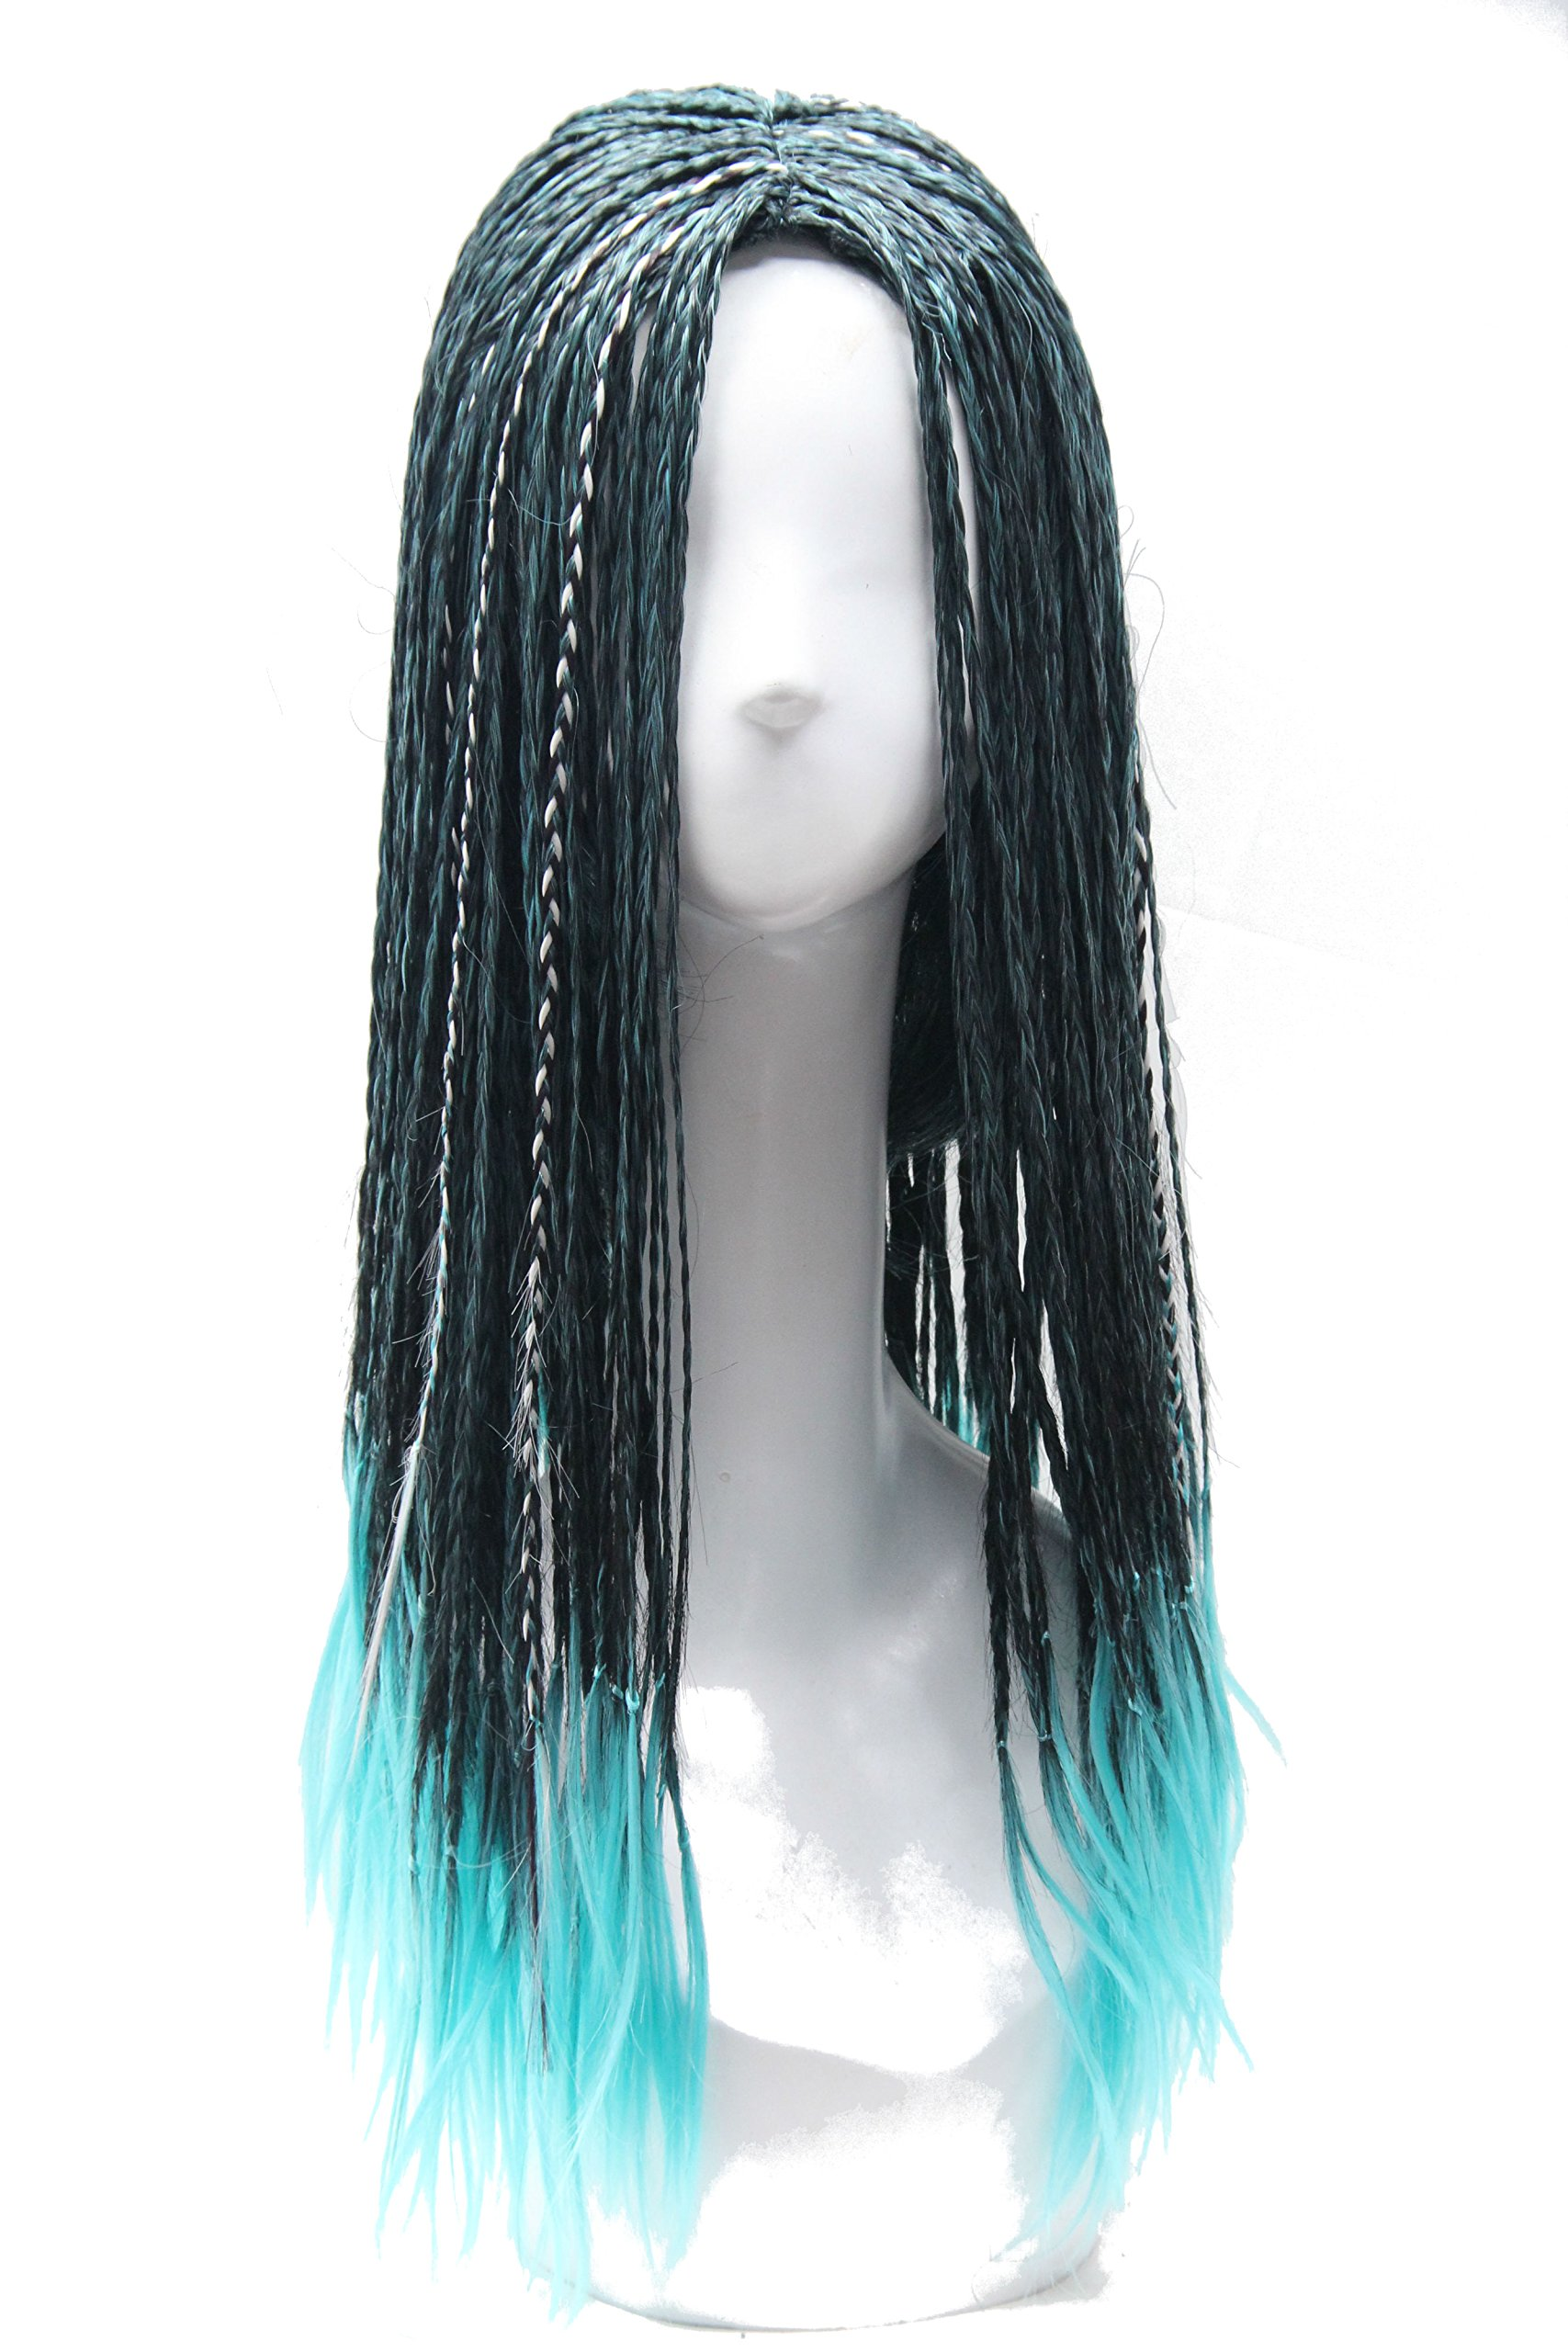 Soul Wigs:Halloween Wig Long Braided Cosplay Wig Black and Blue Ombre wig for kids